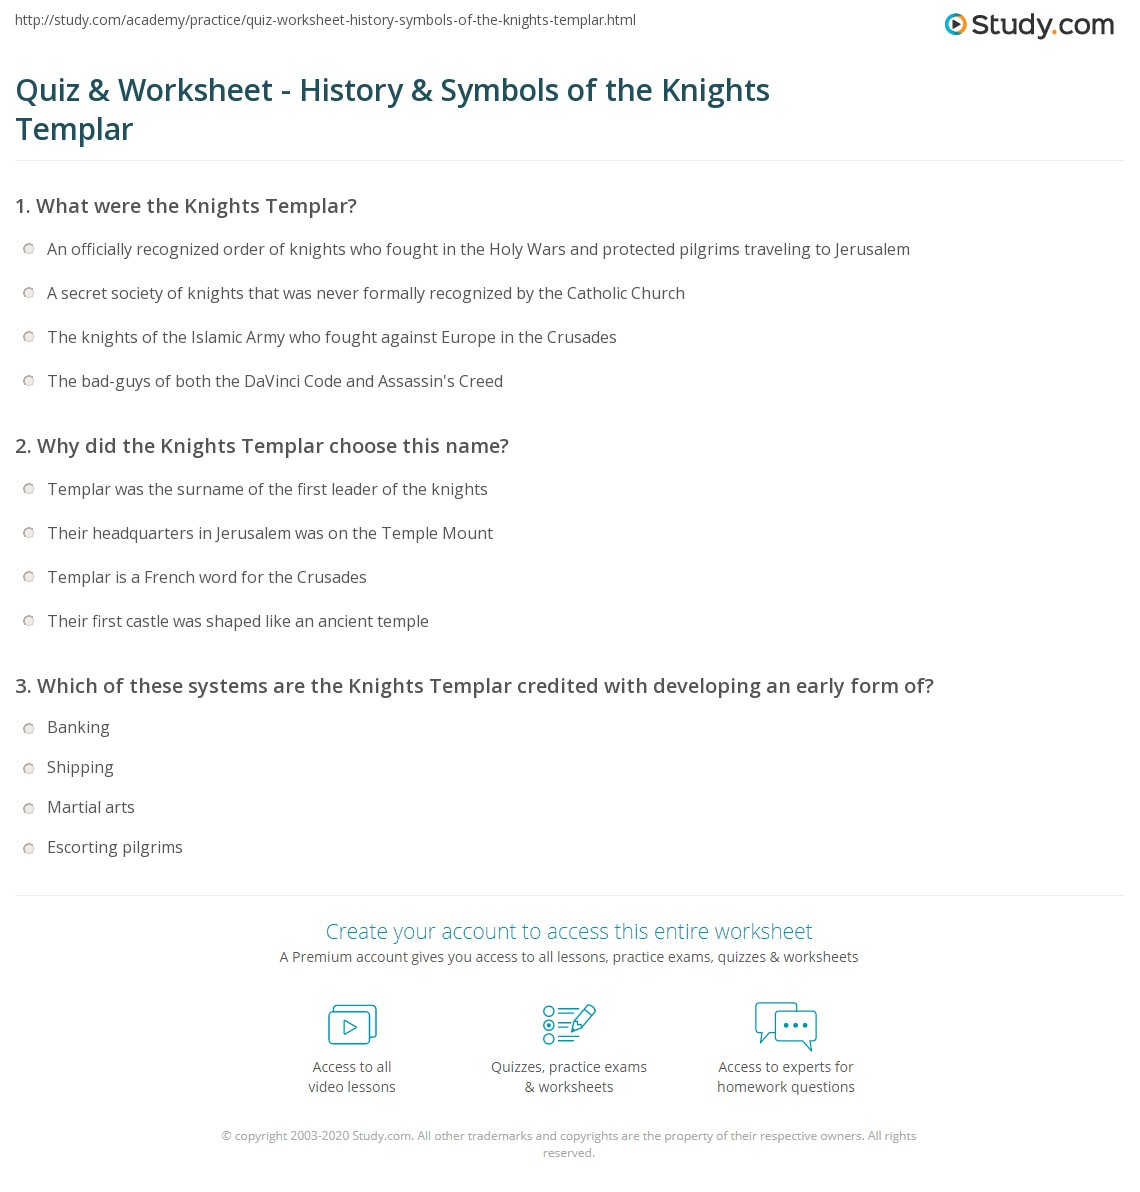 quiz worksheet history symbols of the knights templar. Black Bedroom Furniture Sets. Home Design Ideas